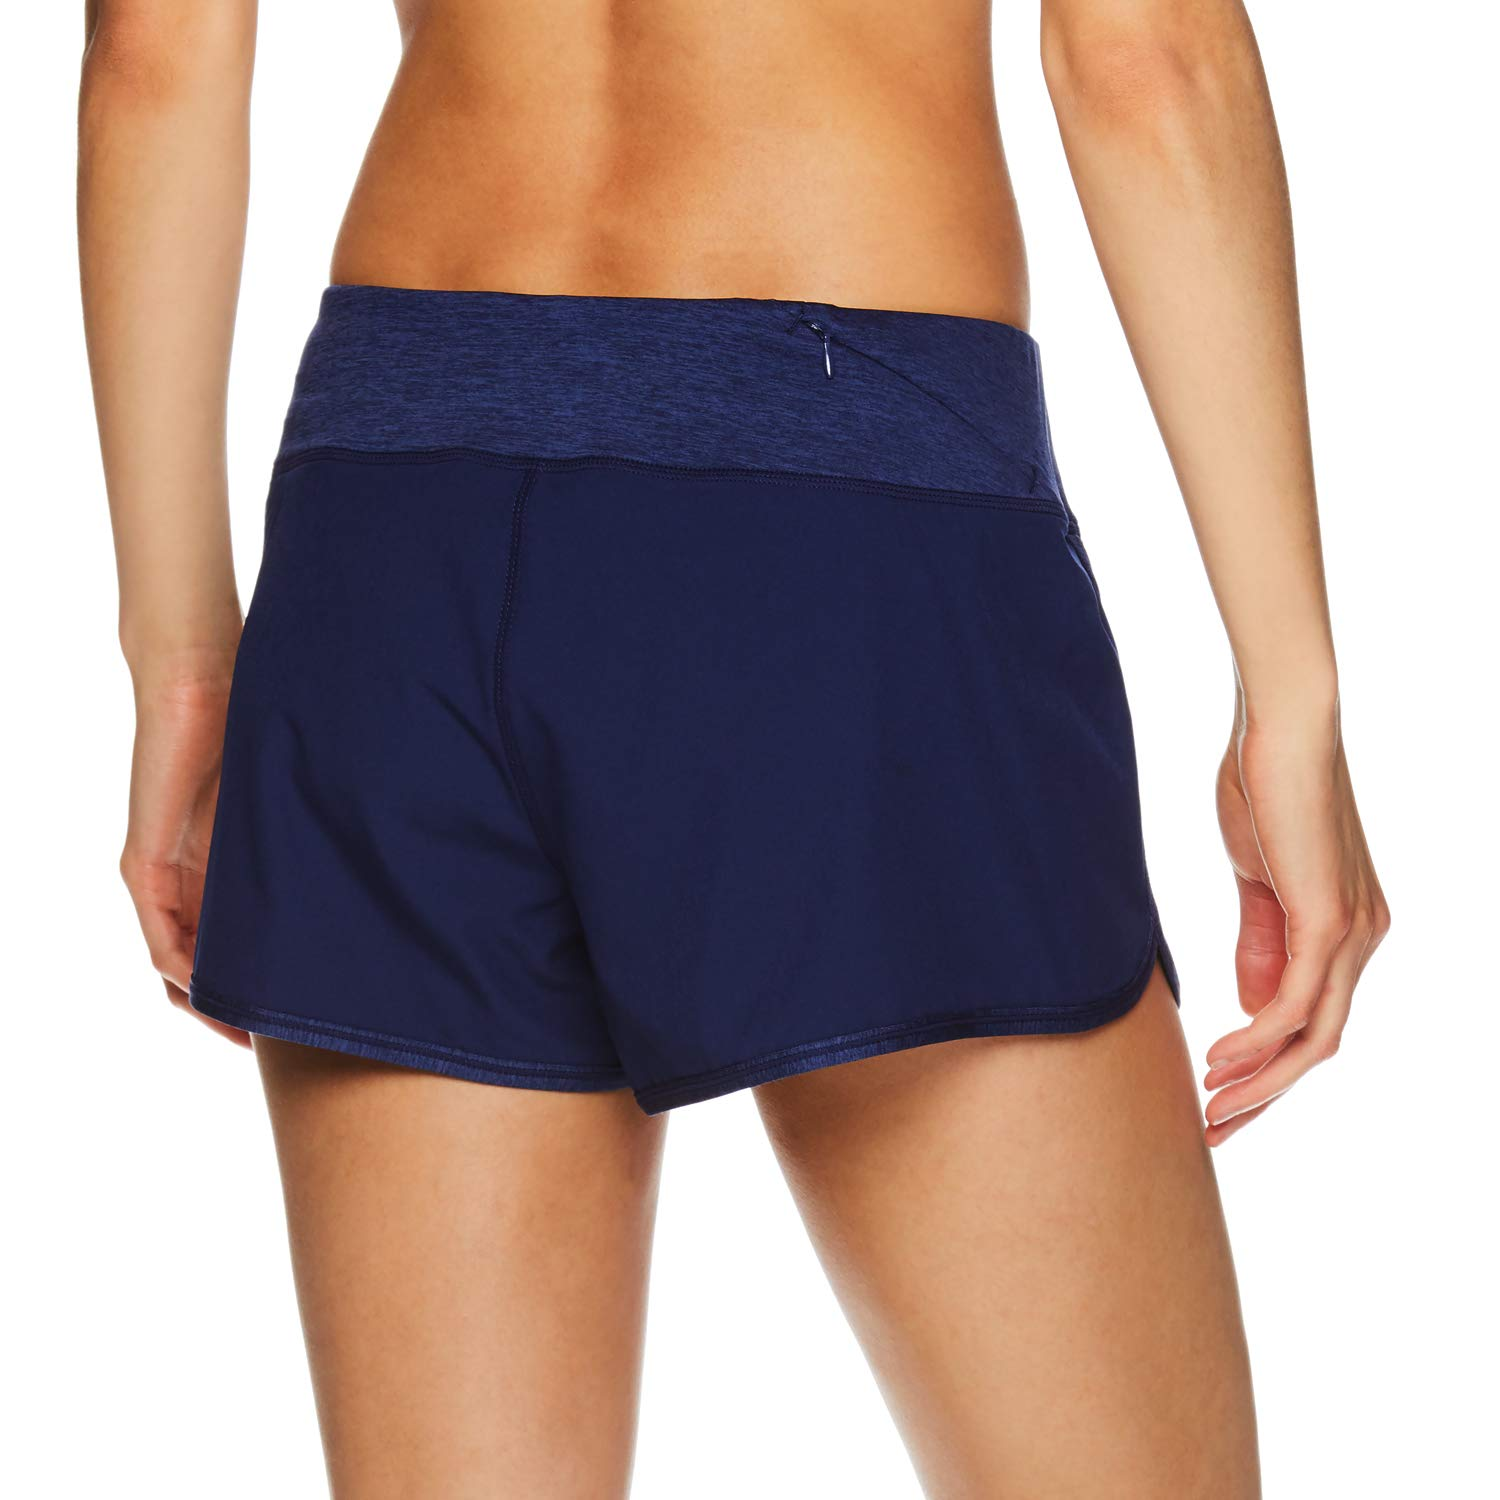 0aa3236c Reebok Women's Running Shorts, Relaxed Fit and Mid-Rise Waist Training  Shorts w/ Liner - 3 1/4 Inch Inseam